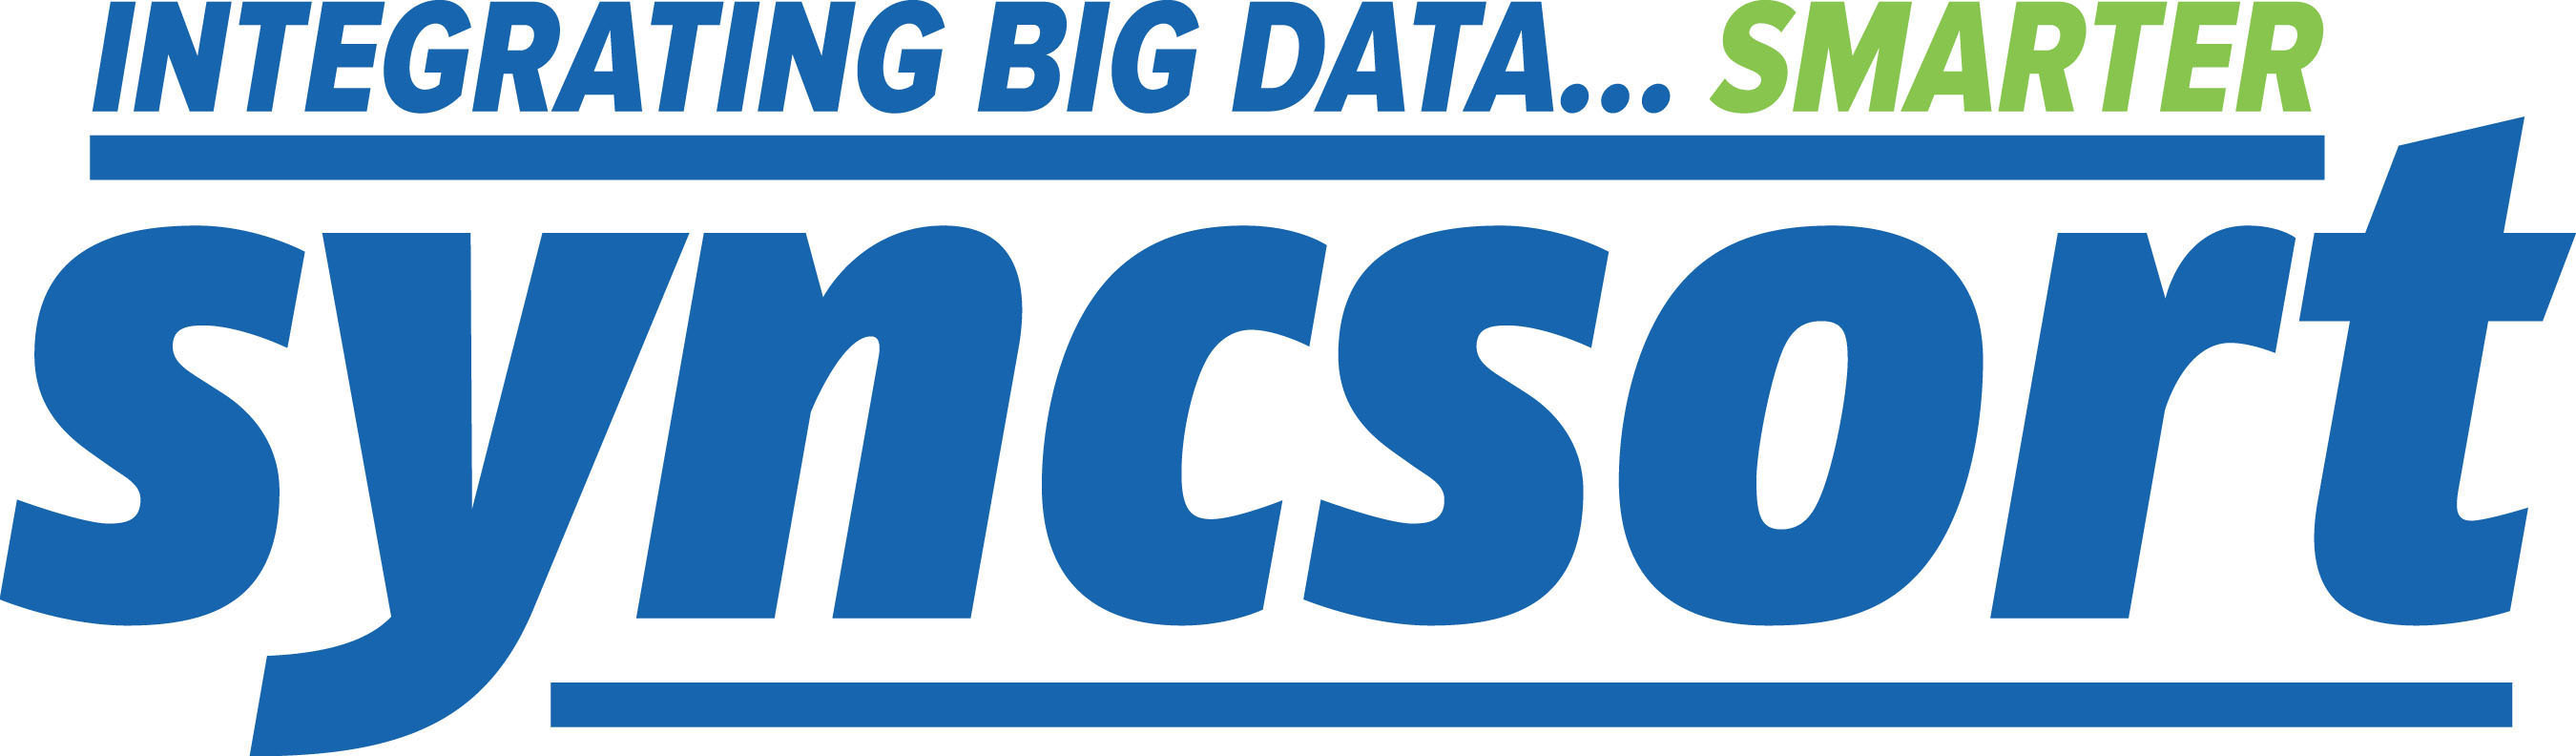 SYNCSORT DATA INTEGRATION LOGO